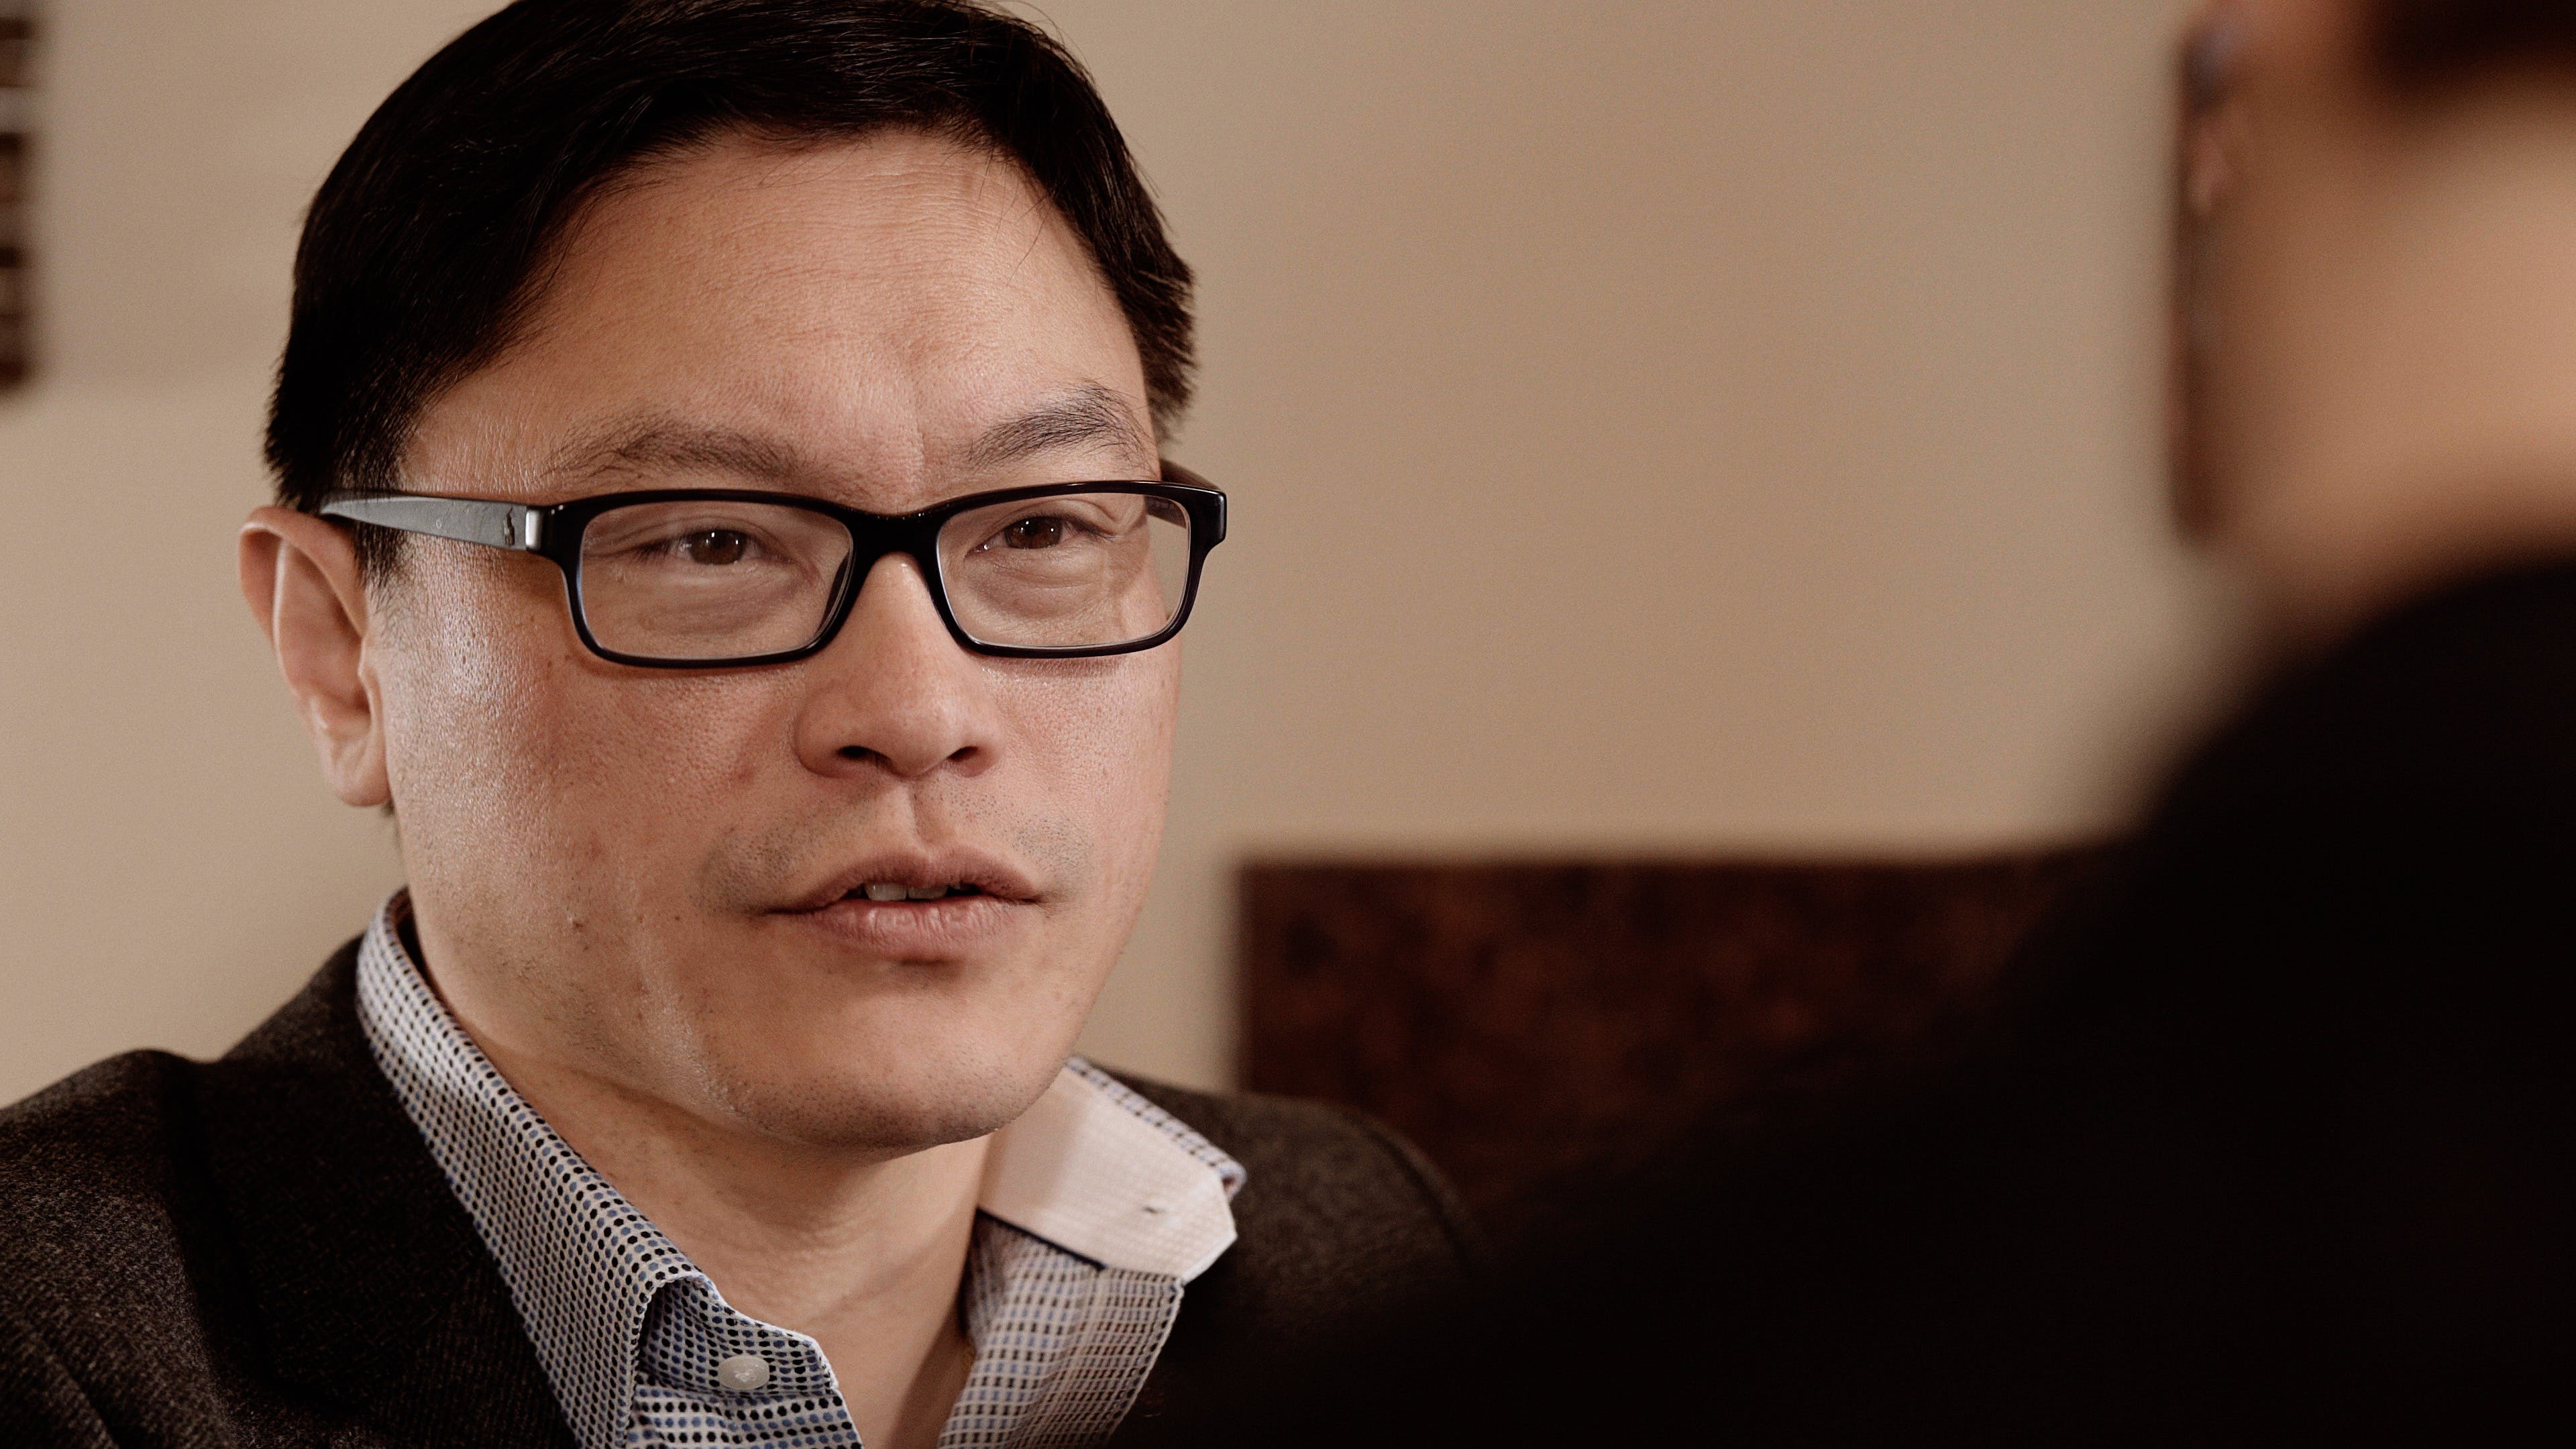 Successful reversal of type 2 diabetes inspired by Dr. Jason Fung